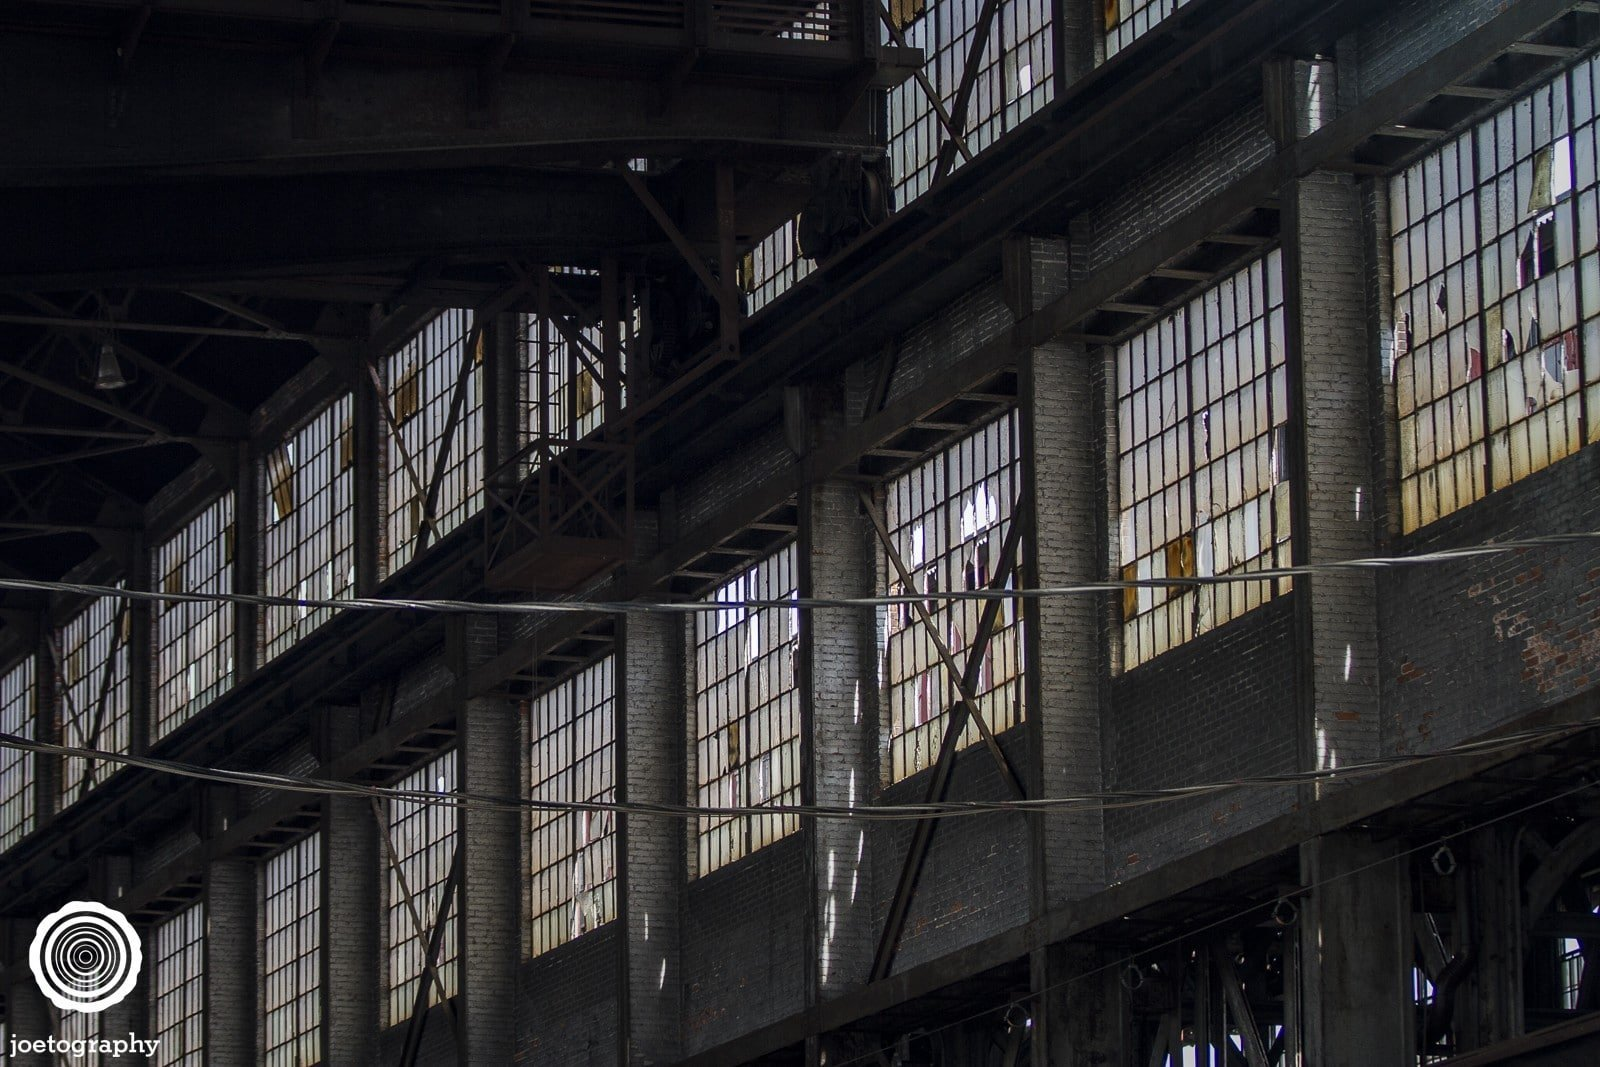 joetography-travel-photography-bethlehem-steel-pennsylvania-2015-15